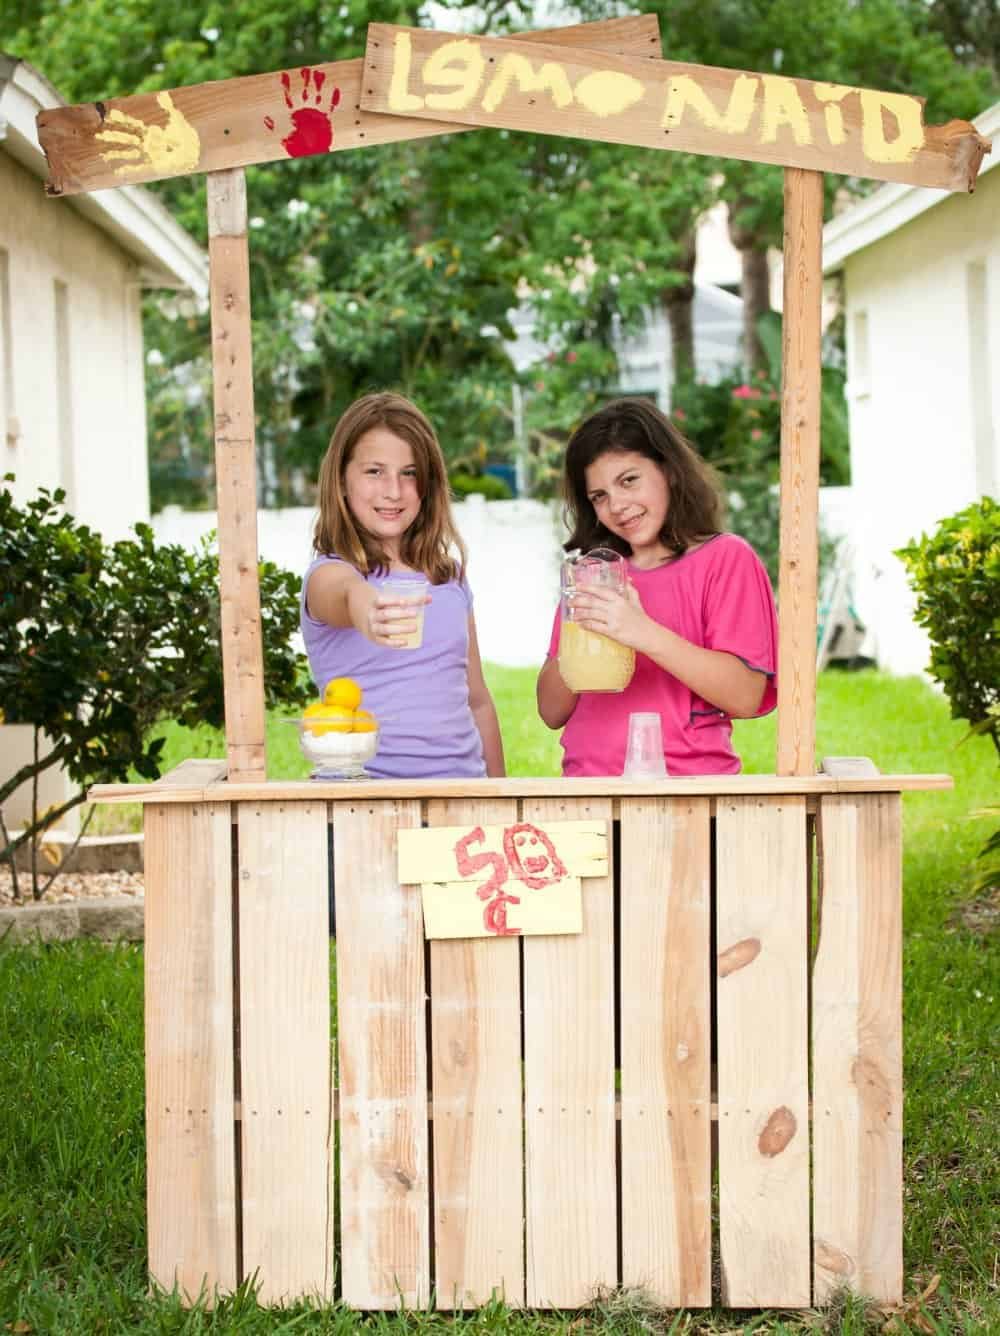 2 girls selling lemonade at their home made lemonade stand